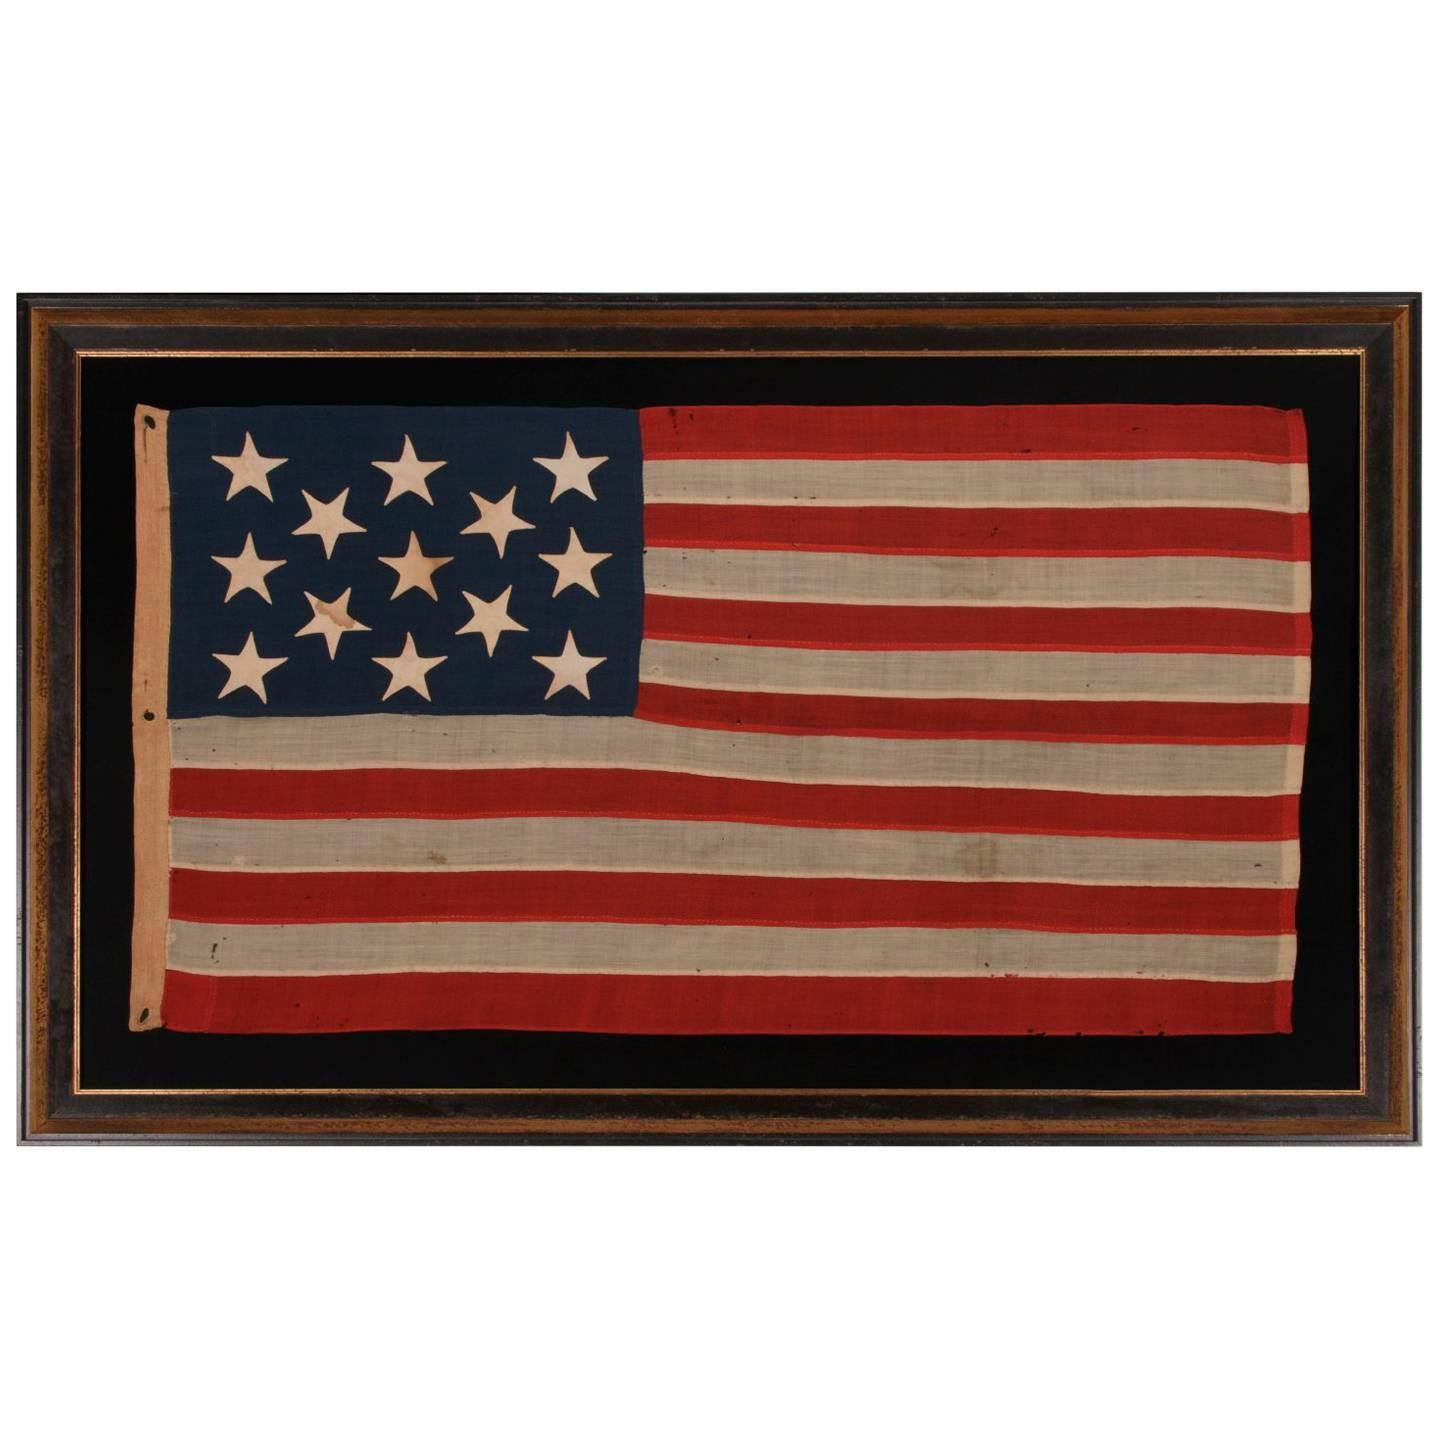 48 Star U.S Navy Jack, Made at Mare Island, California, Dated 1941 ...